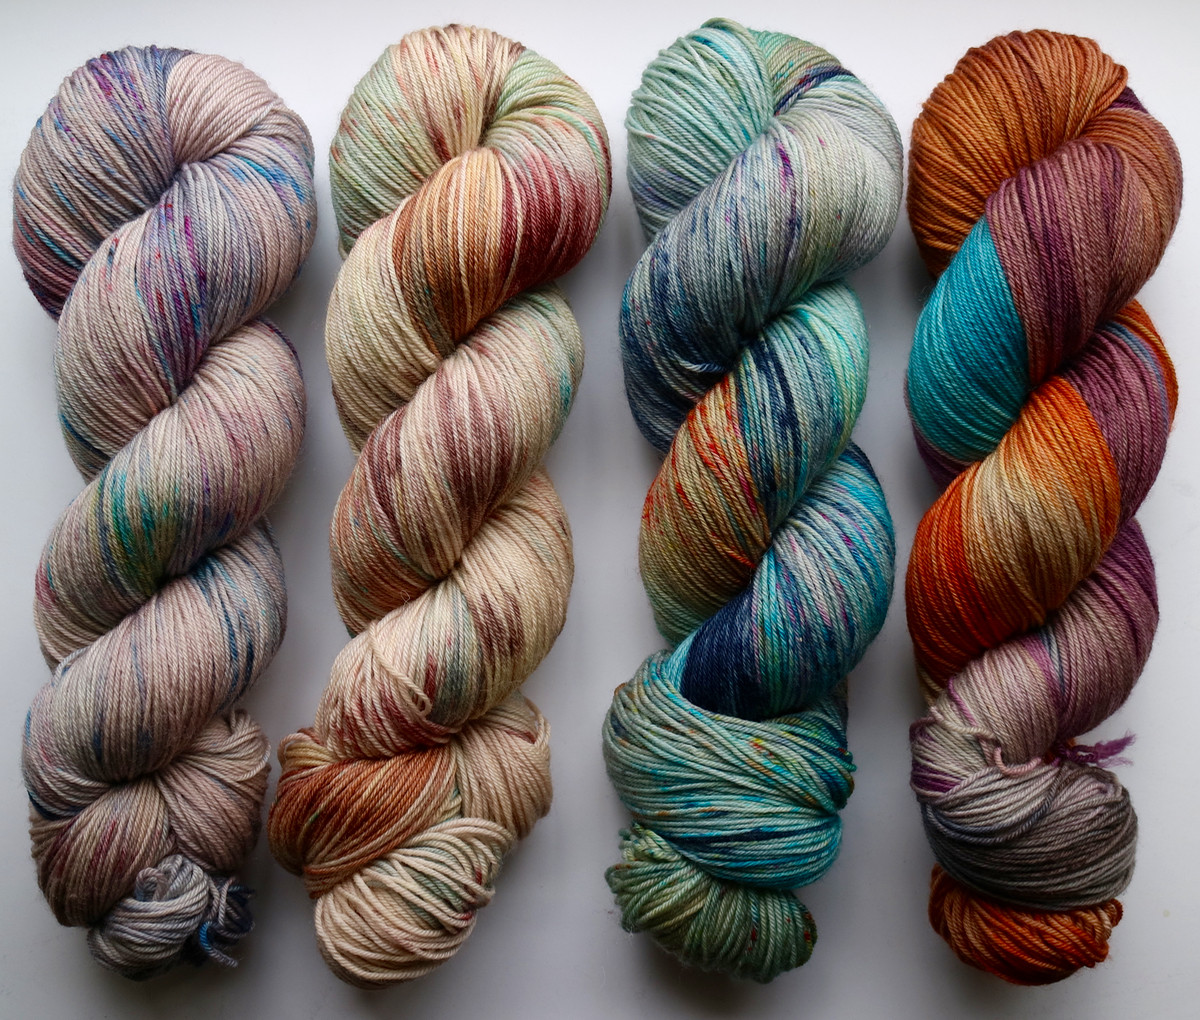 Luxury New Hand Dyed Yarn In Stock soon the Yarn Gallery Yarn Companies Of Great 45 Images Yarn Companies